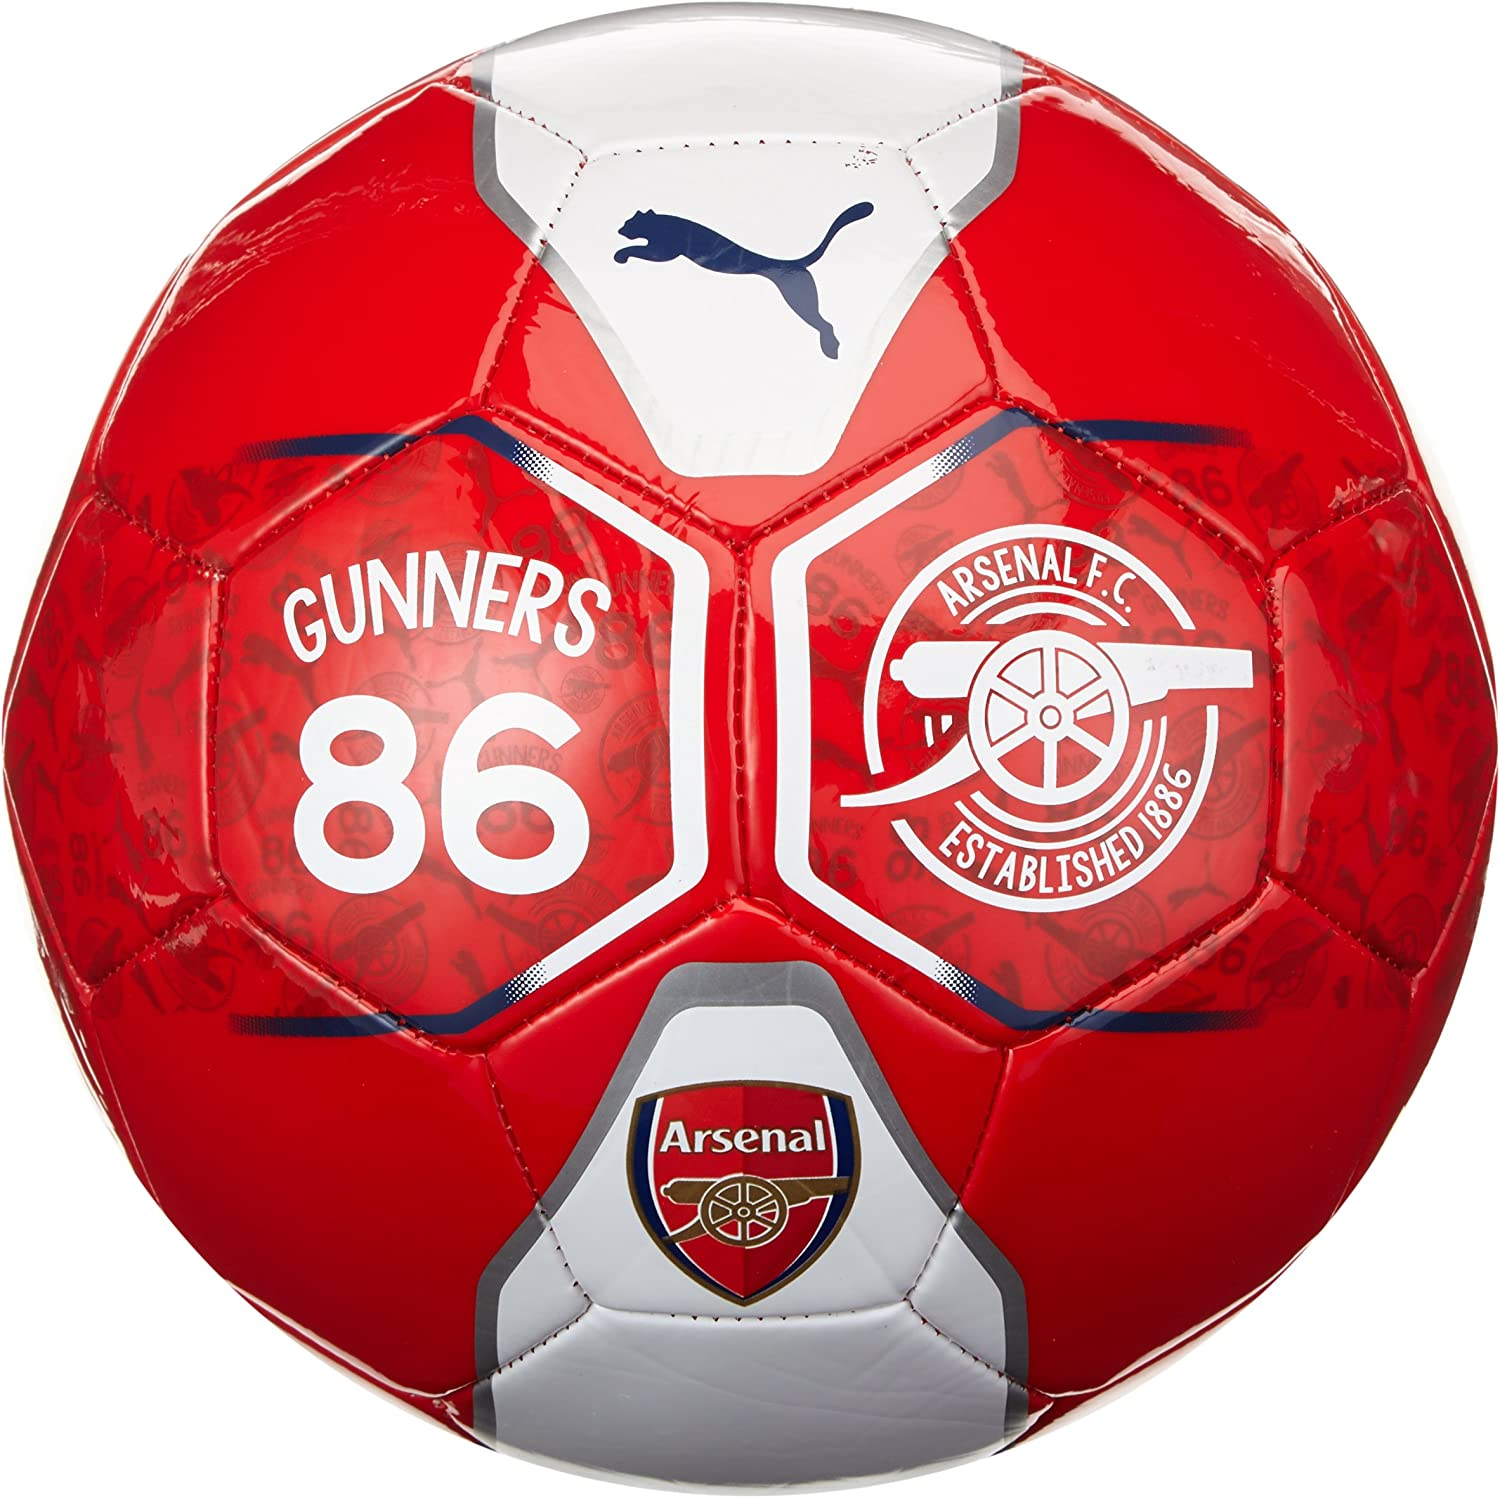 Balon Puma FC Arsenal Fan: Amazon.es: Deportes y aire libre